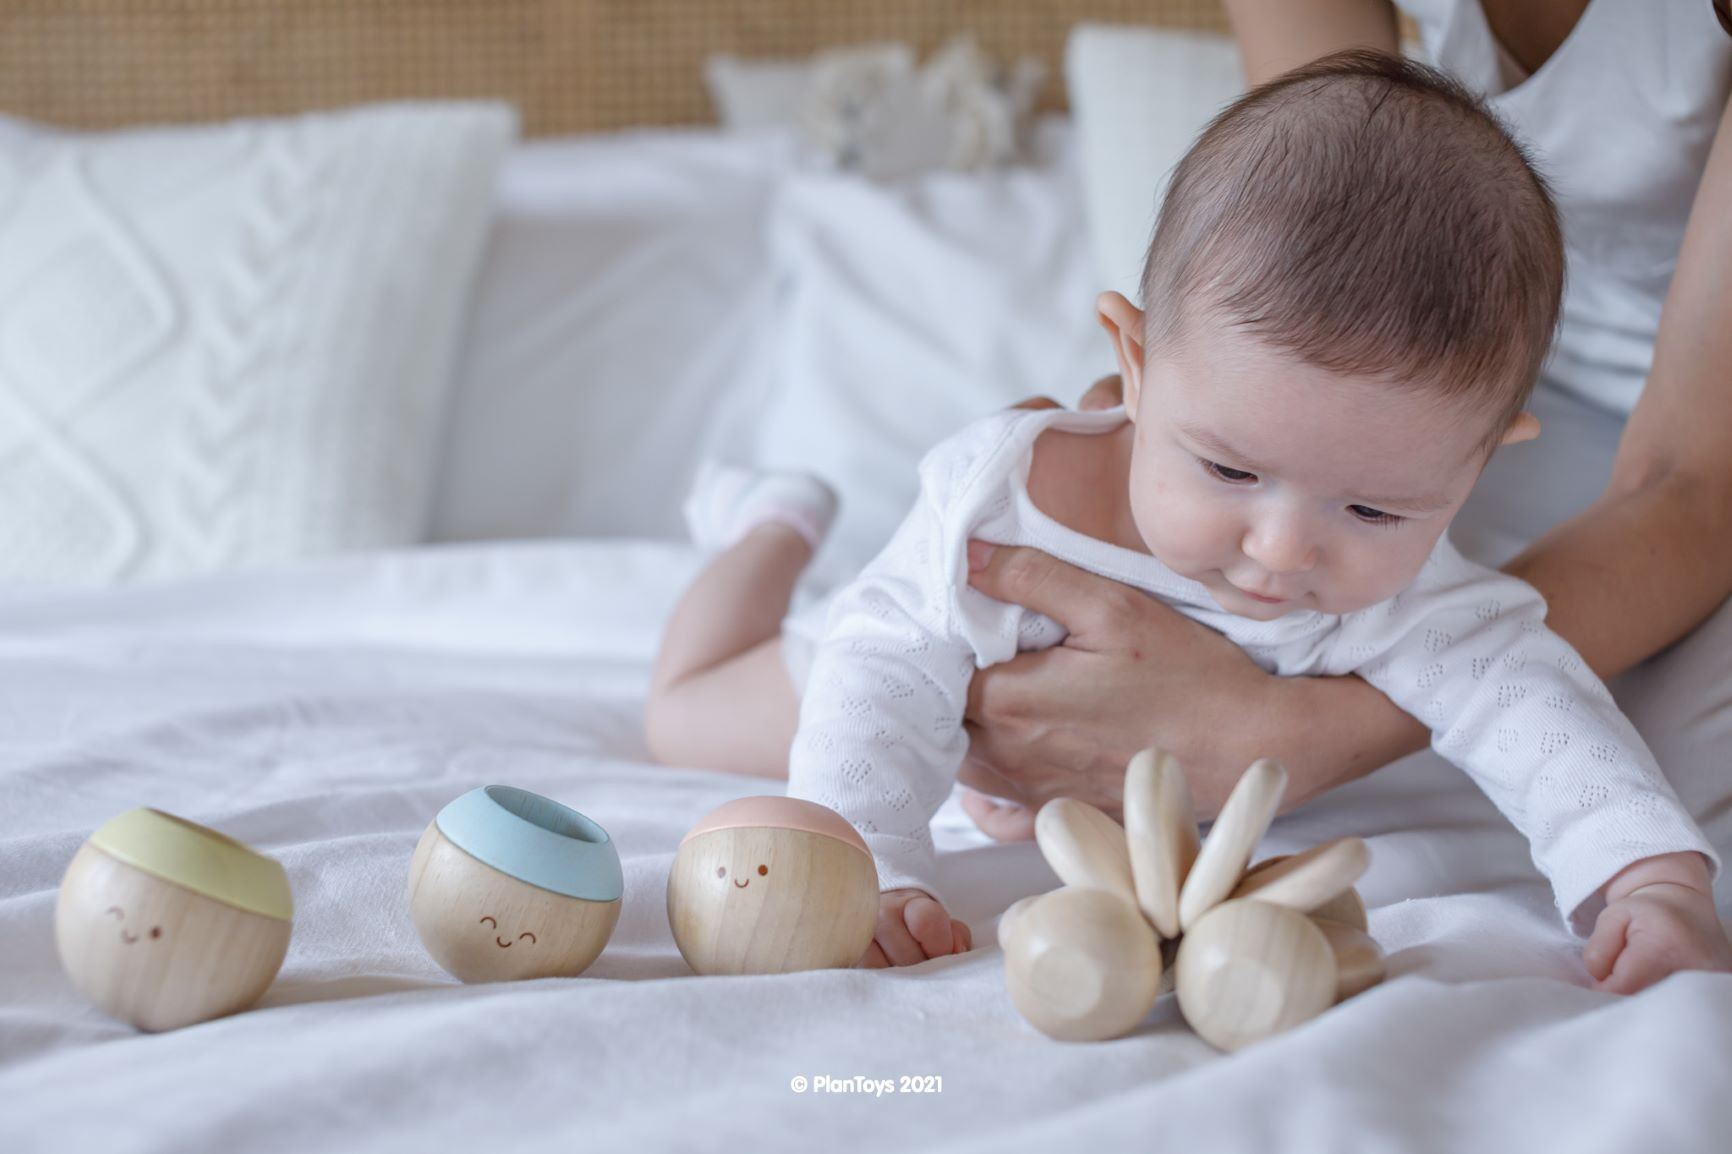 5268_PlanToys_BABY_CAR_-_NATURAL_Babies_Natural_Color_Fine_Motor_Coordination_Tactile_Visual_Emotion_6m_Wooden_toys_Education_toys_Safety_Toys_Non-toxic_1.jpg